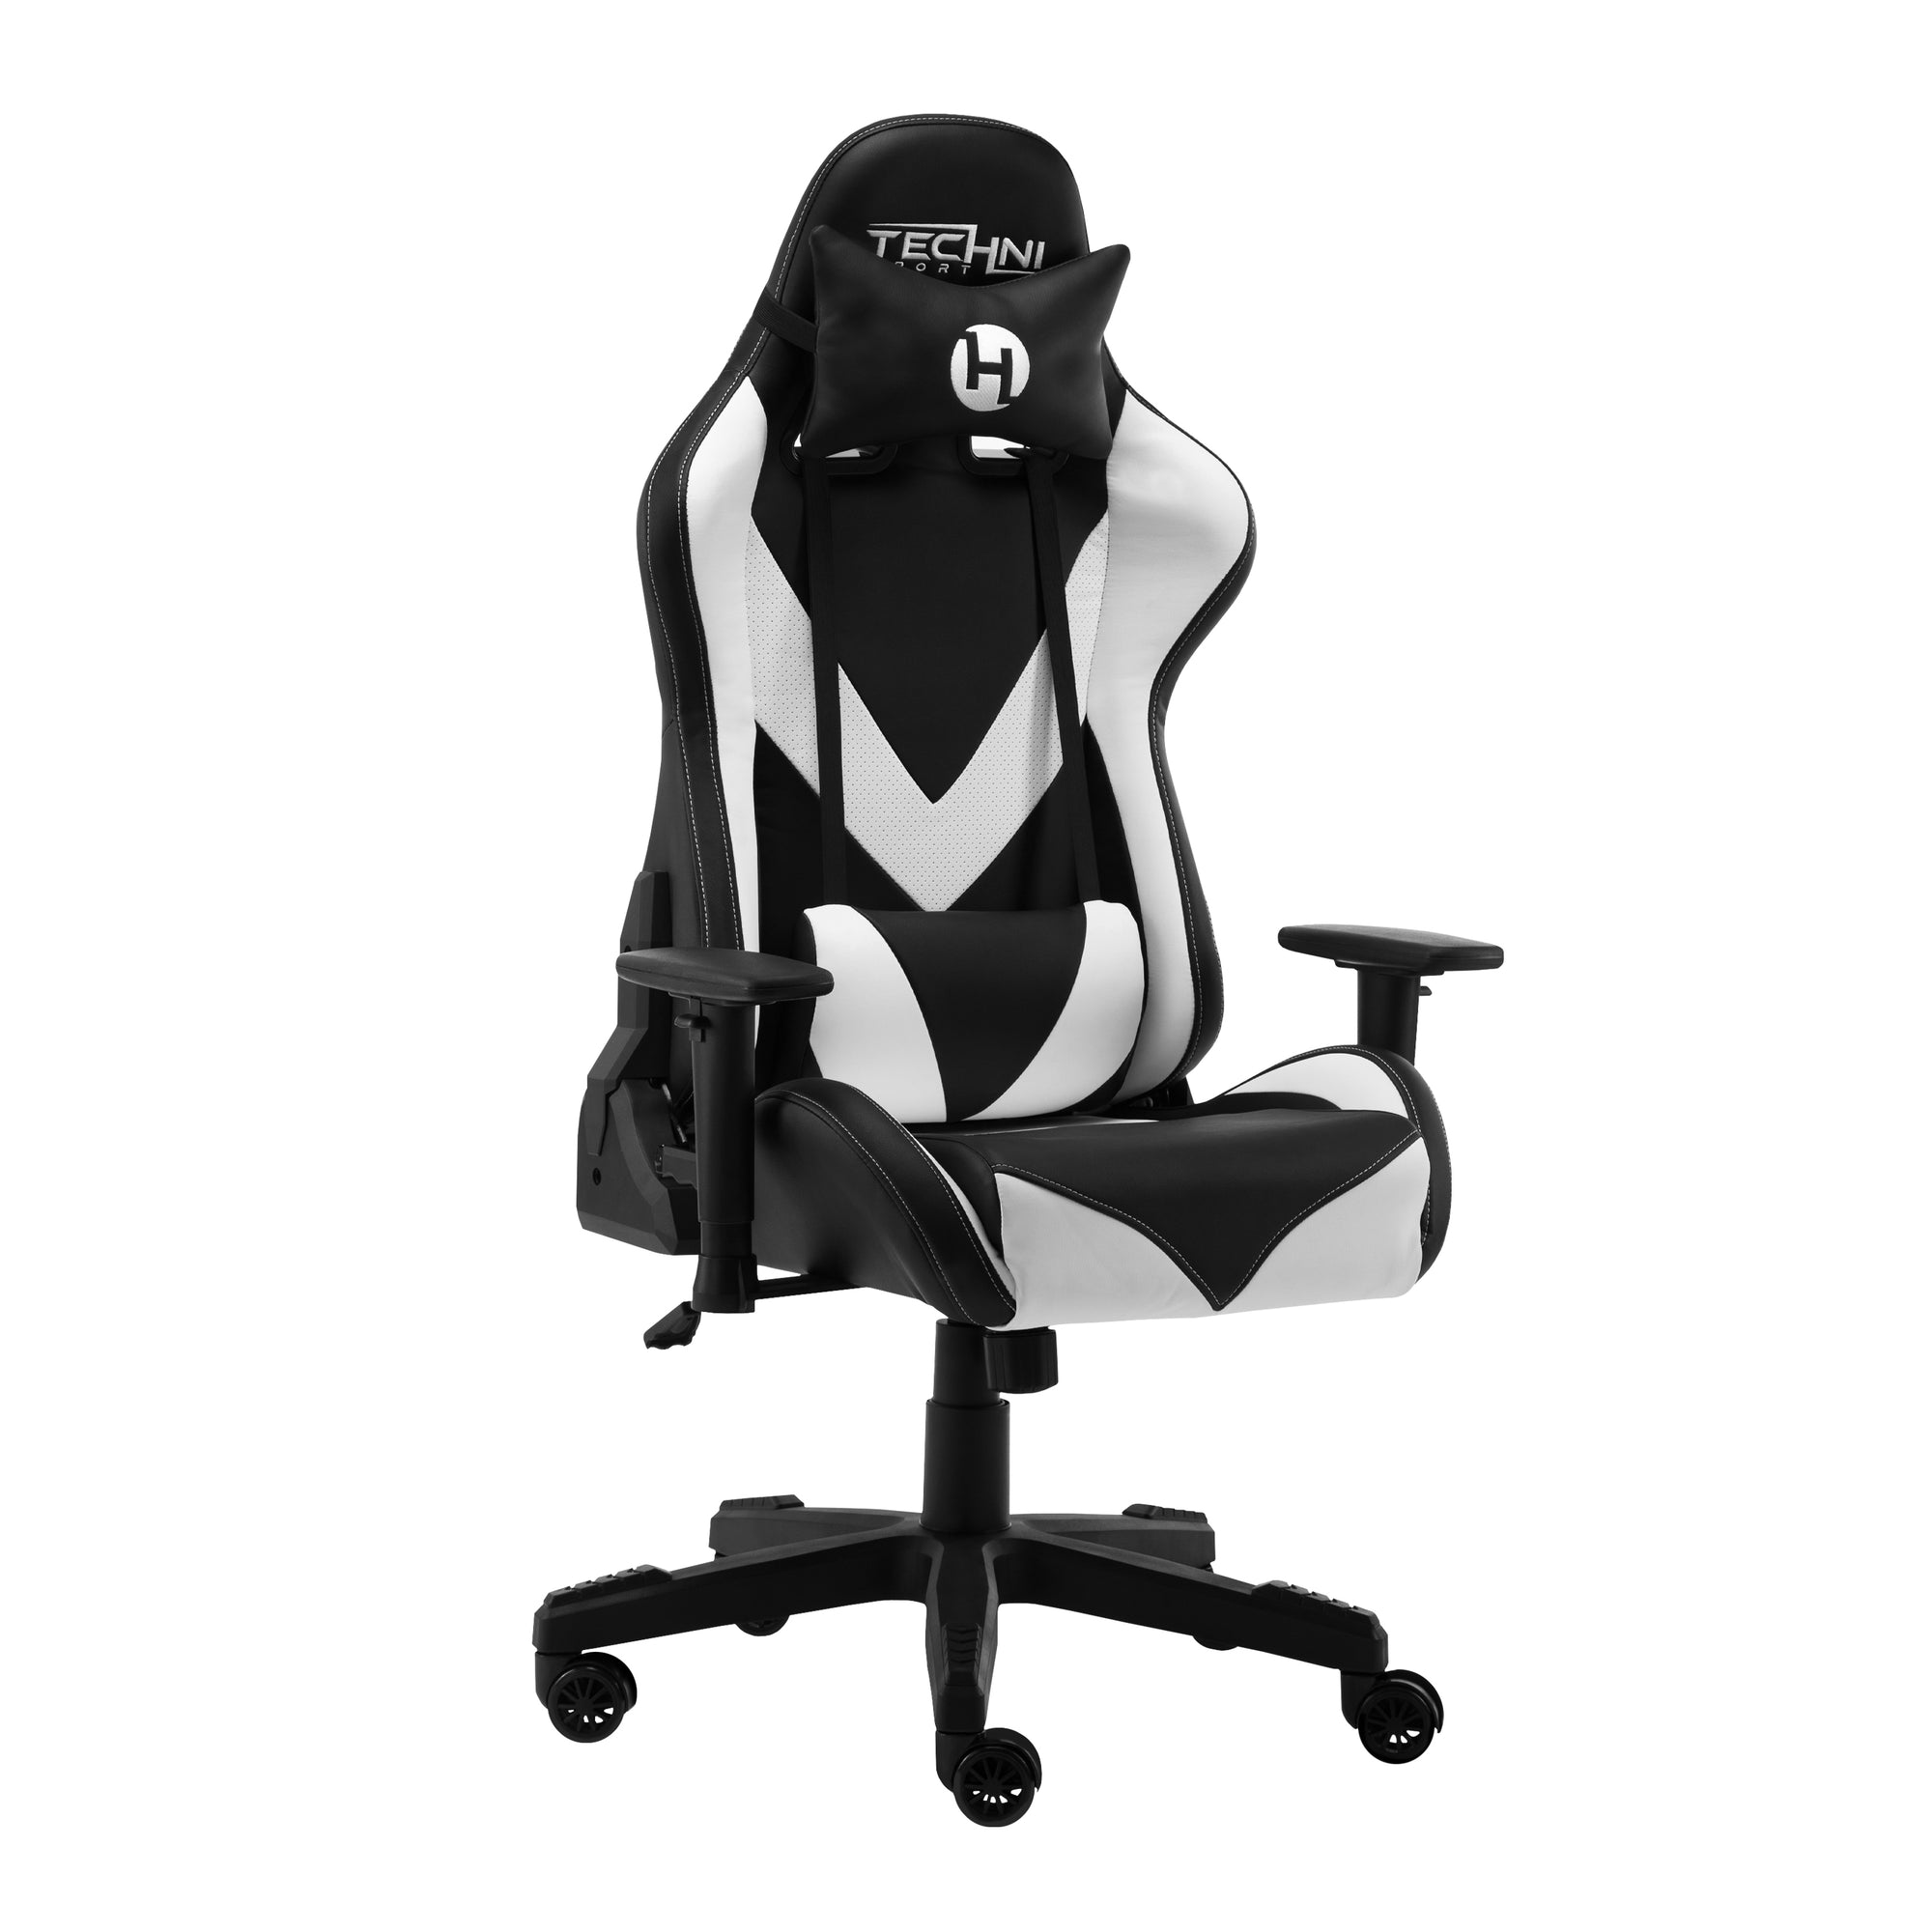 Techni Sport TS-92 Office-PC Gaming Chai, White